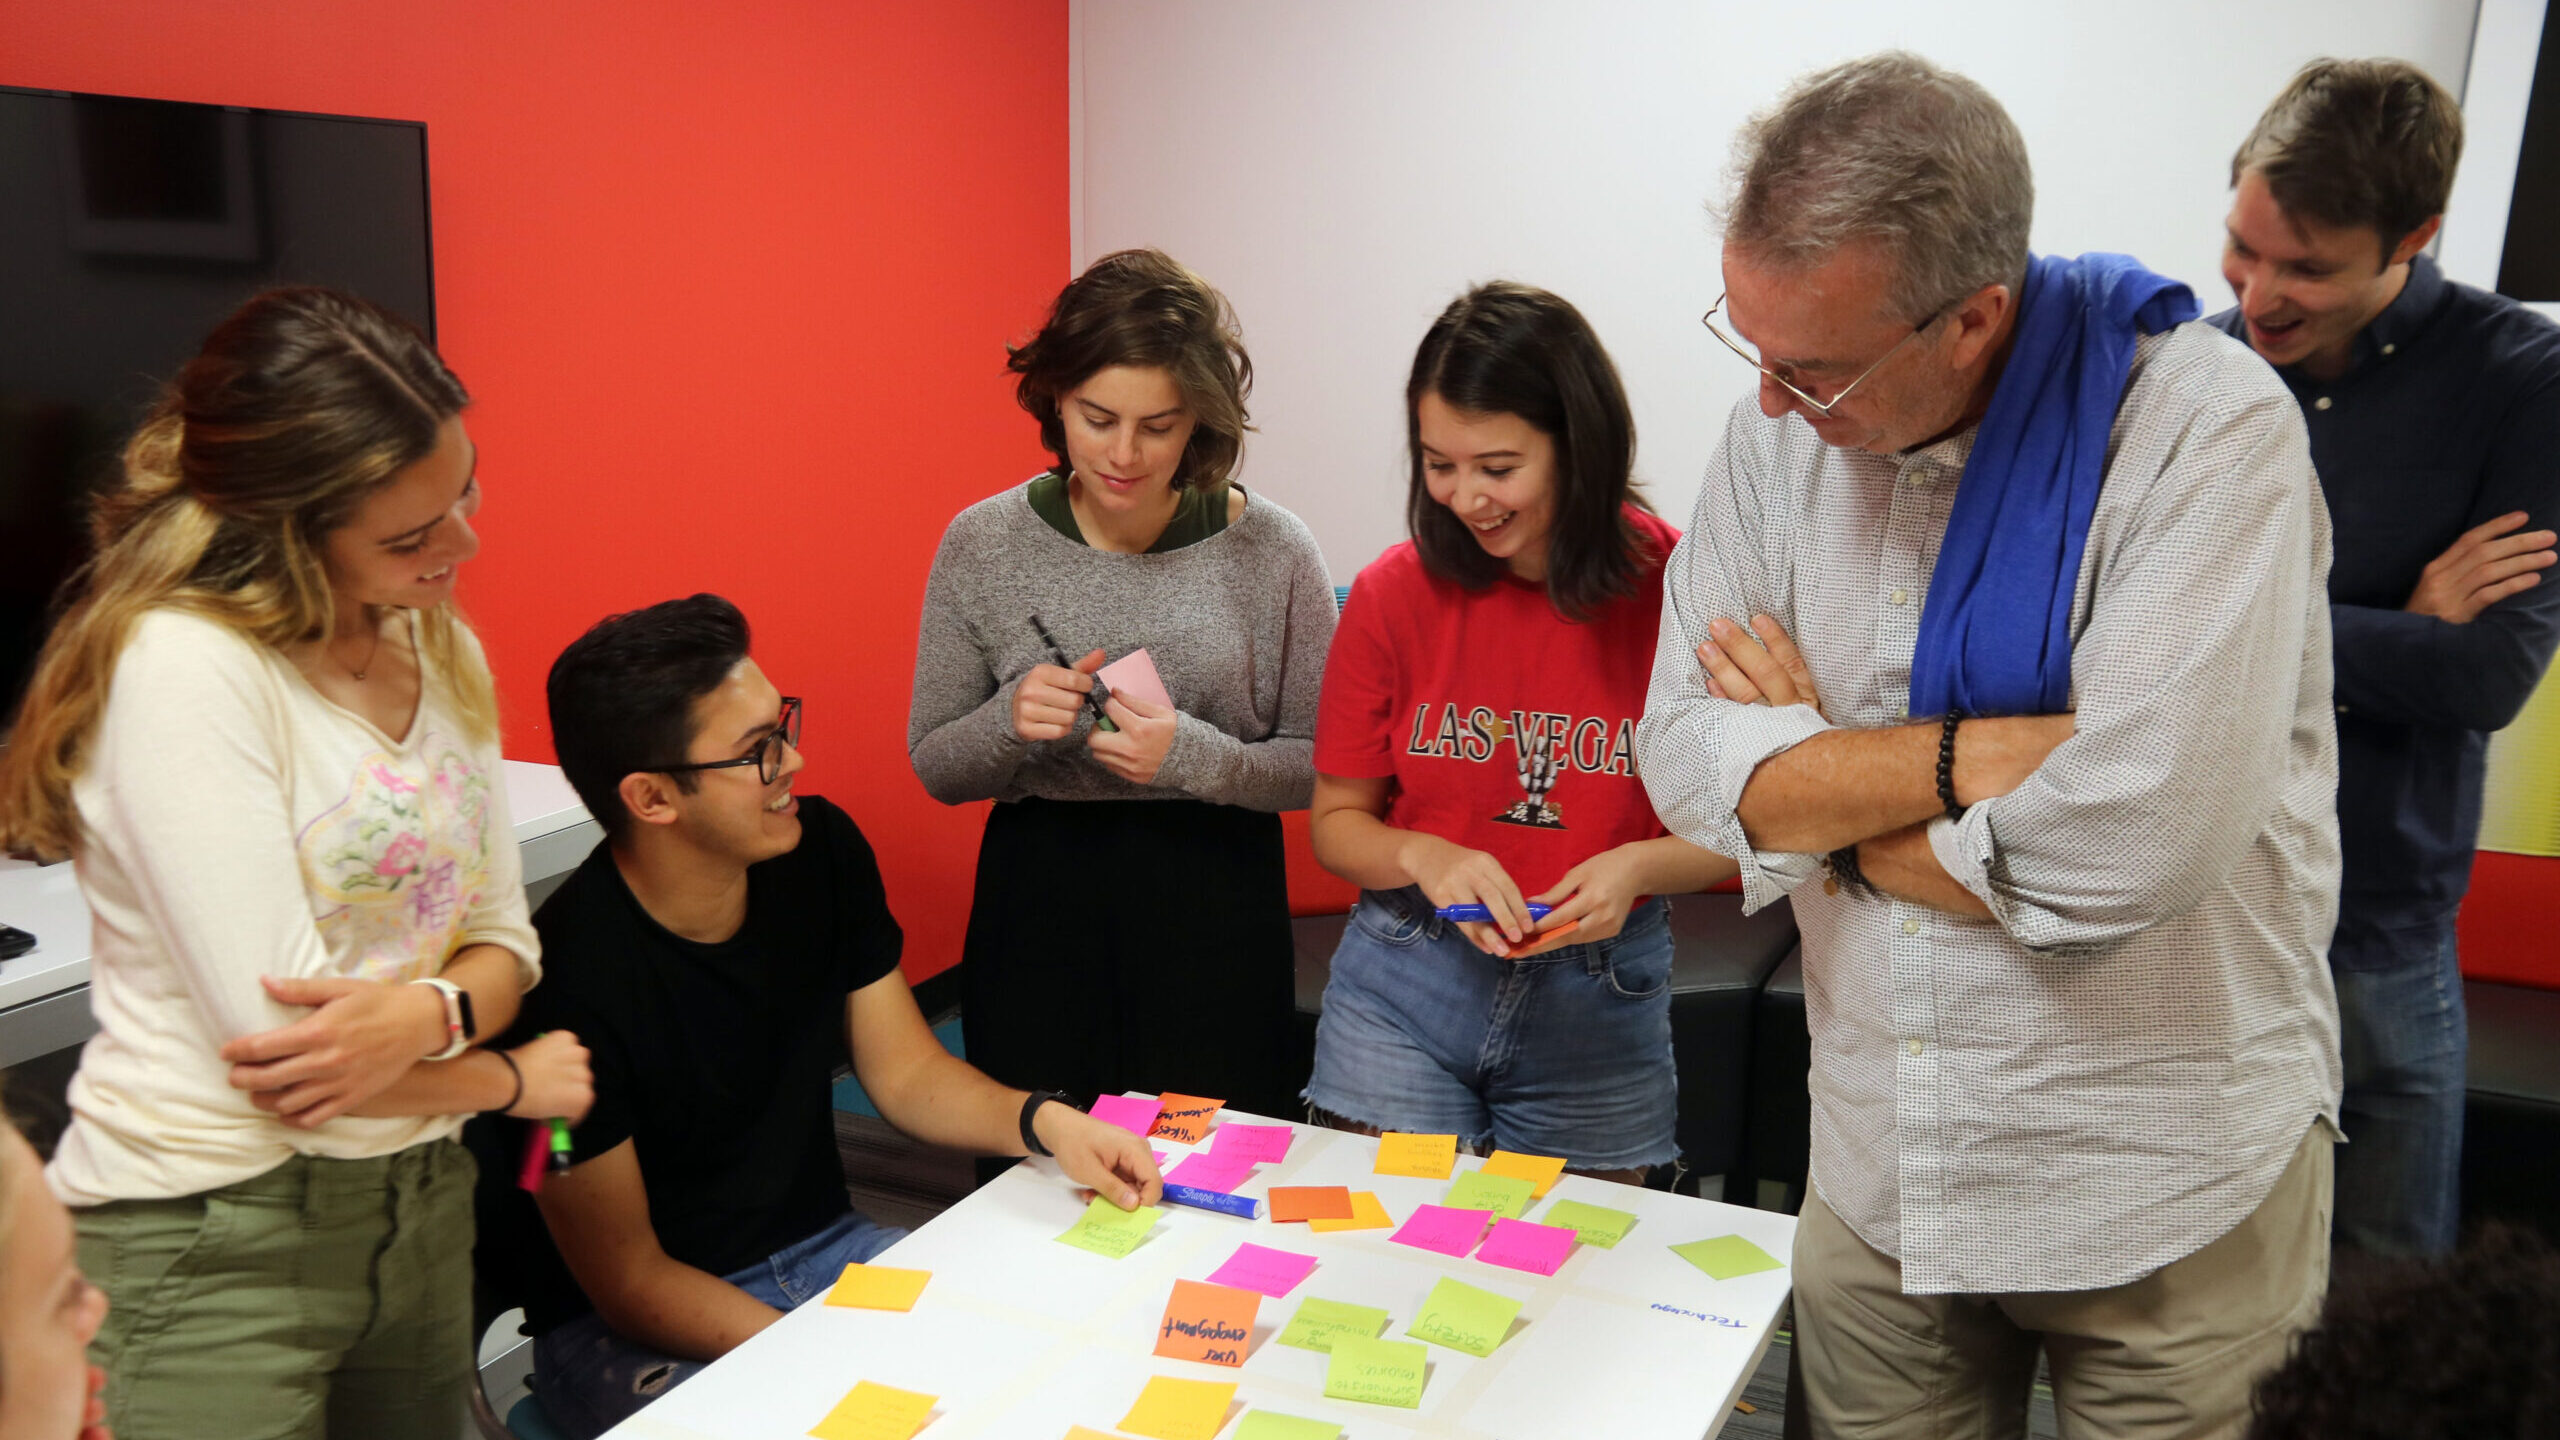 A group of Fellows work with Post-it notes and laugh